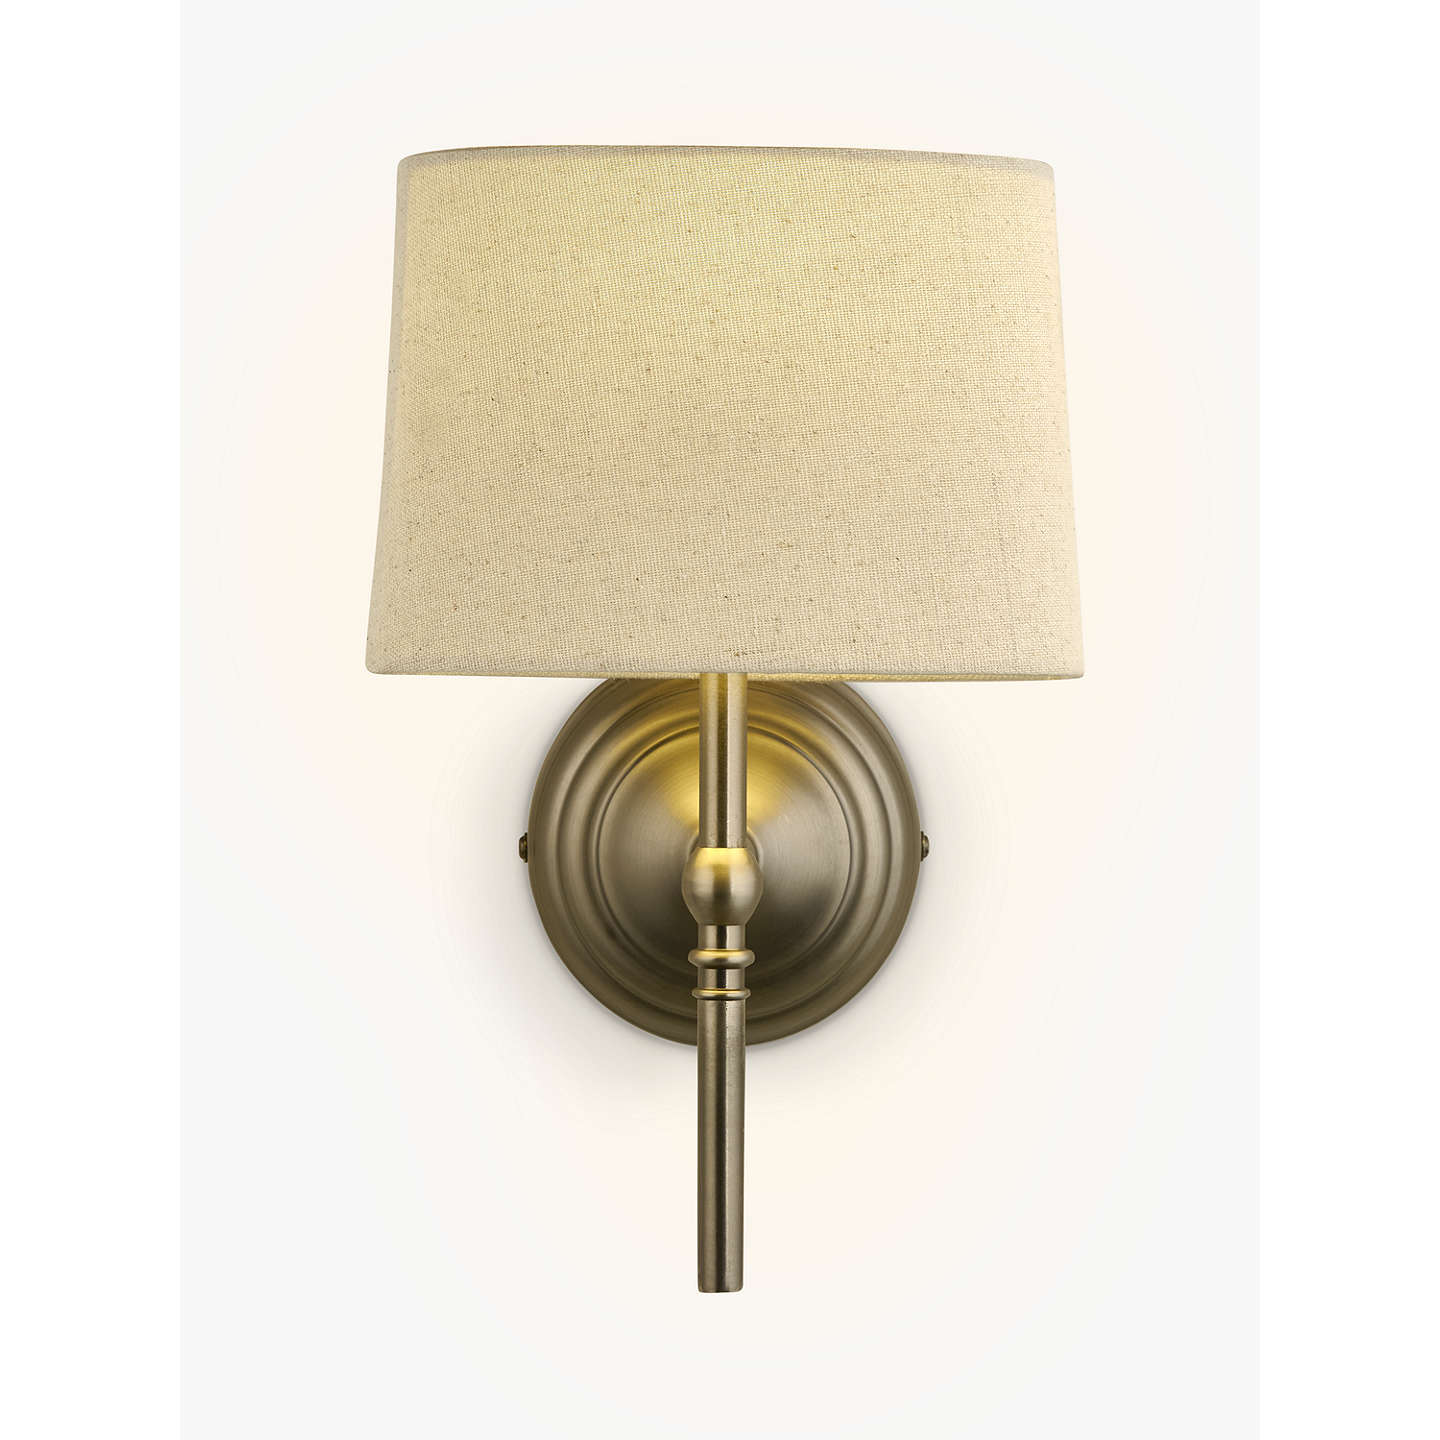 Porch Light John Lewis: John Lewis Isabel Wall Light, 1 Light, Pewter At John Lewis